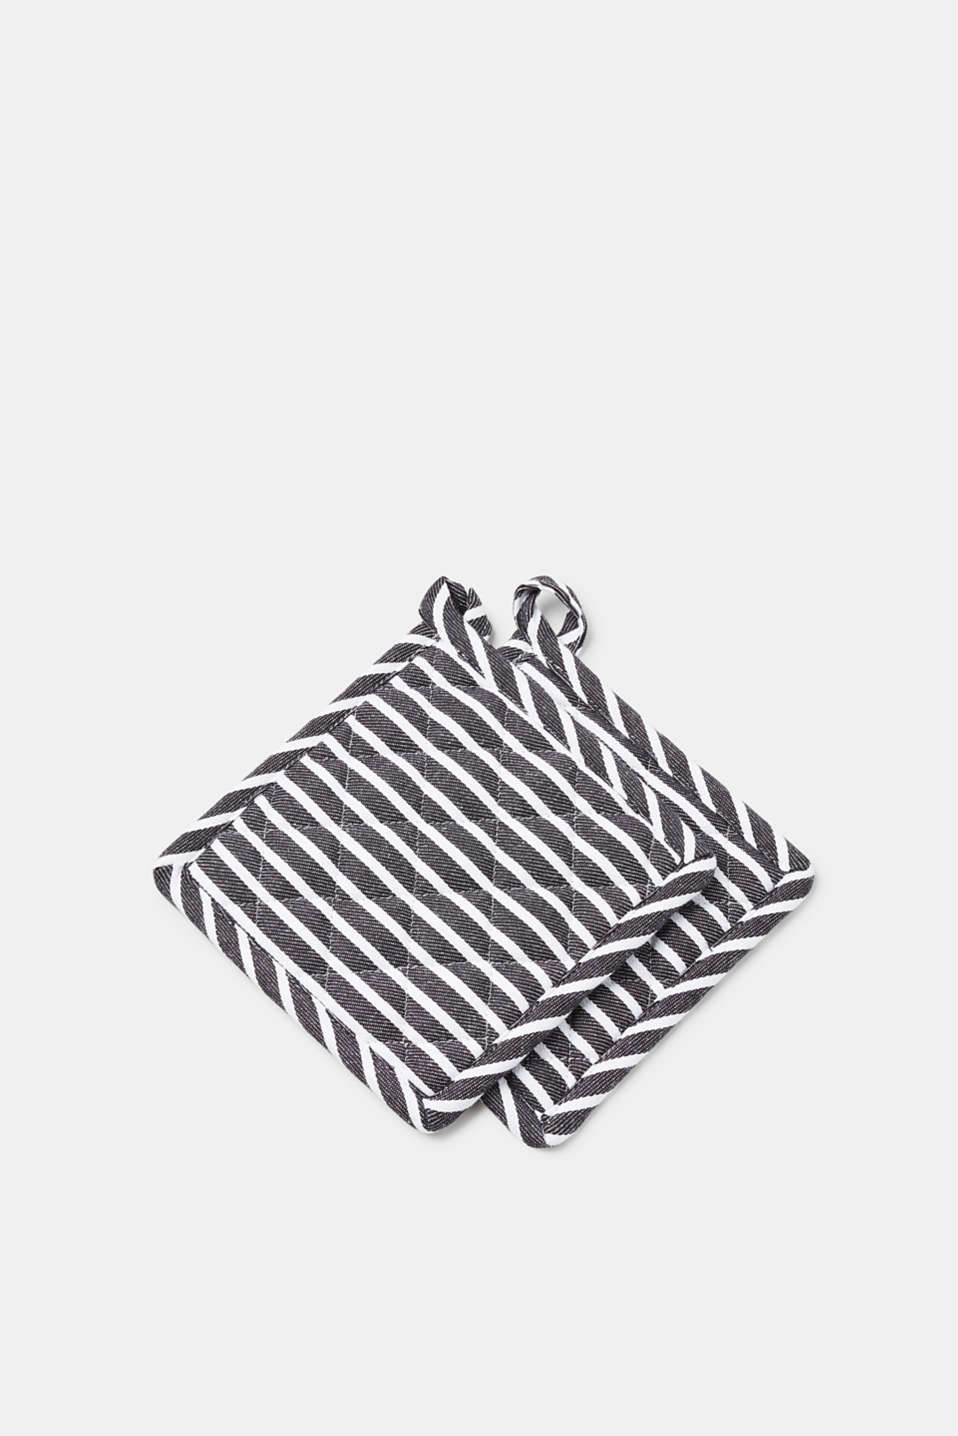 Esprit - Pot holders with woven stripes, made of pure cotton